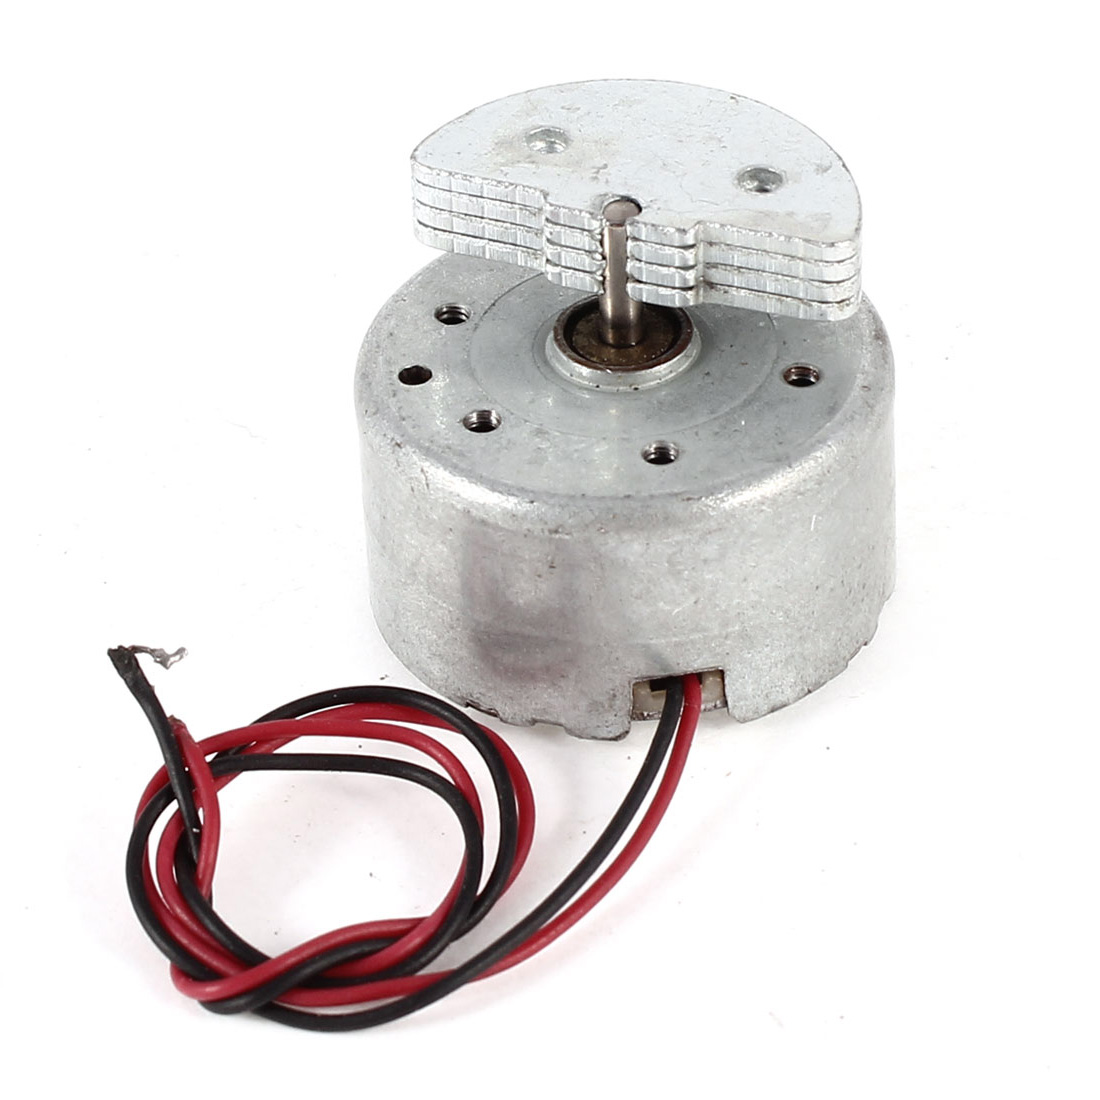 Mini Vibration Vibrating Electric Motor 3500RPM DC 1.5-6V RF300 for Toys Game Devices